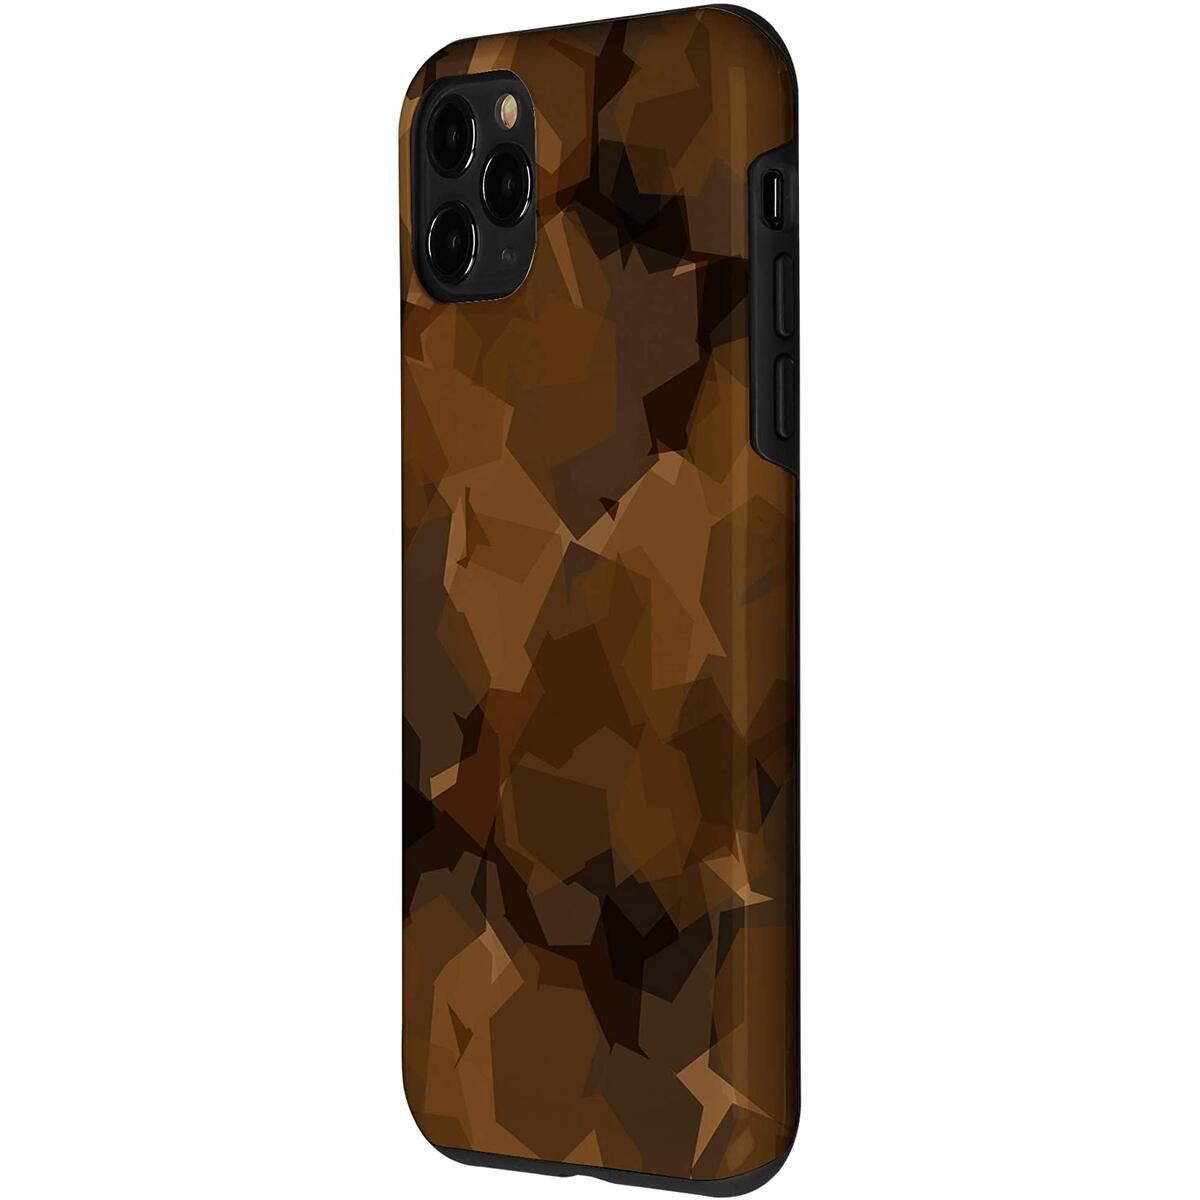 iPhone Protective phone Covers - Camouflagel Brown